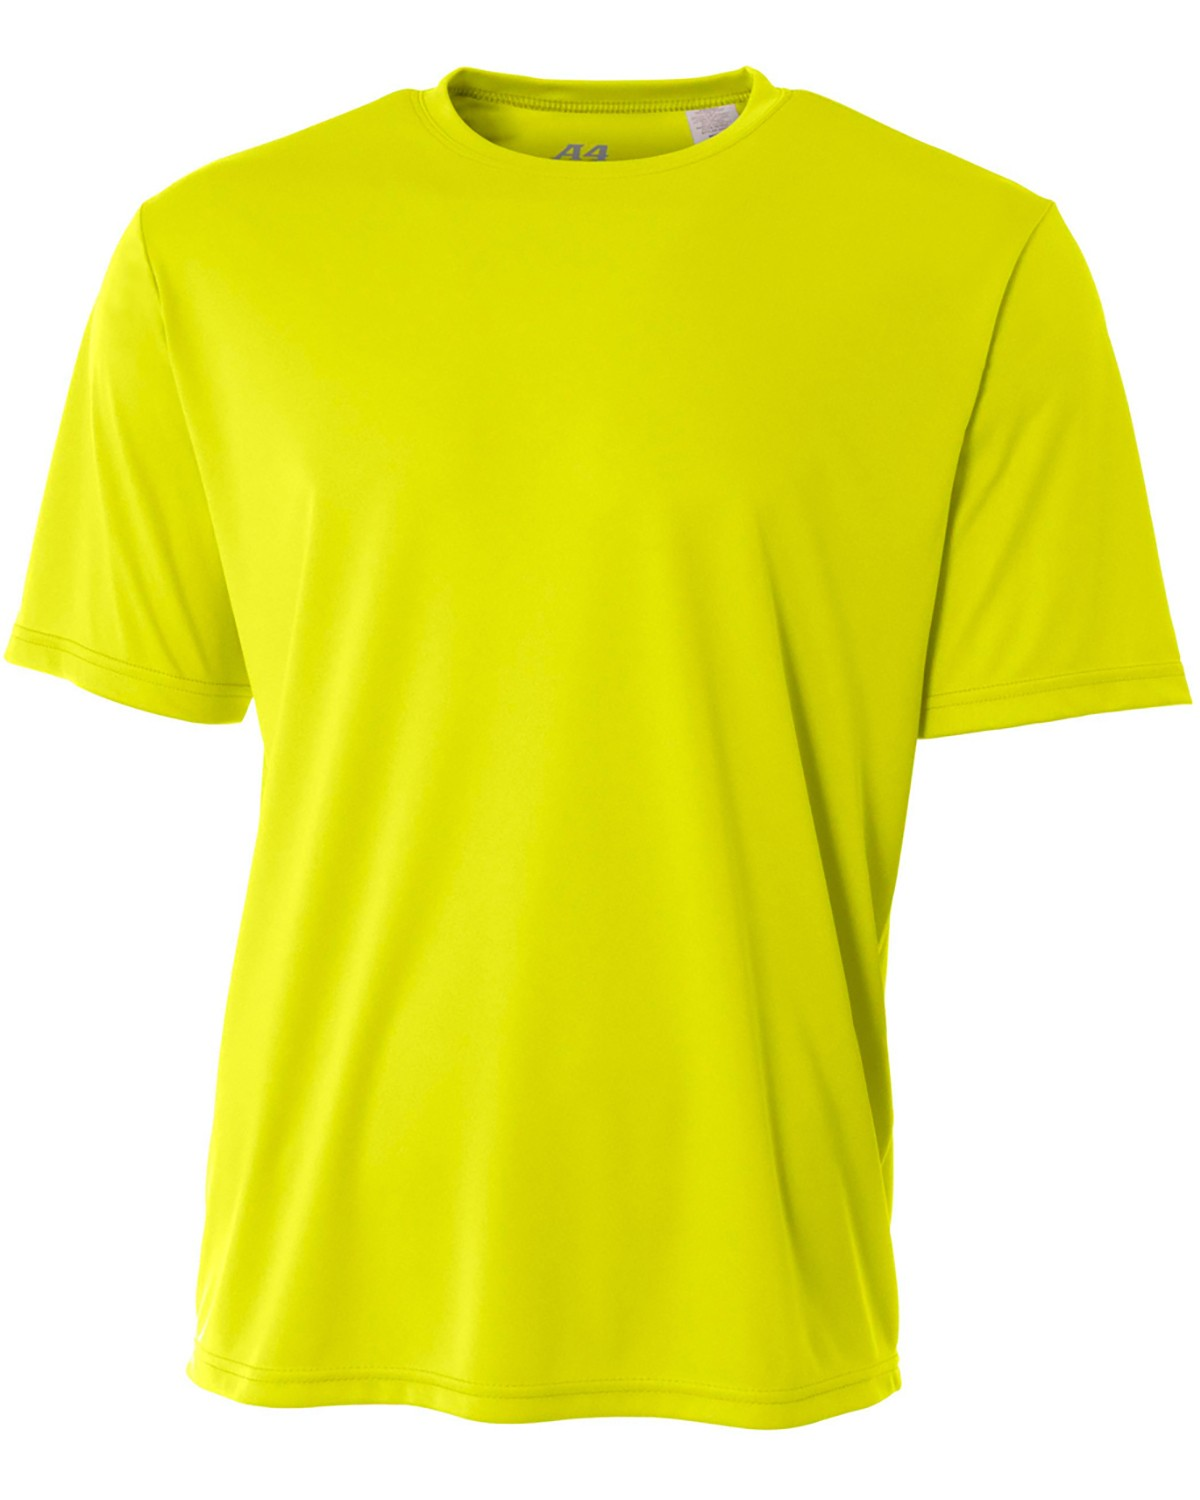 NB3142 A4 Apparel SAFETY YELLOW